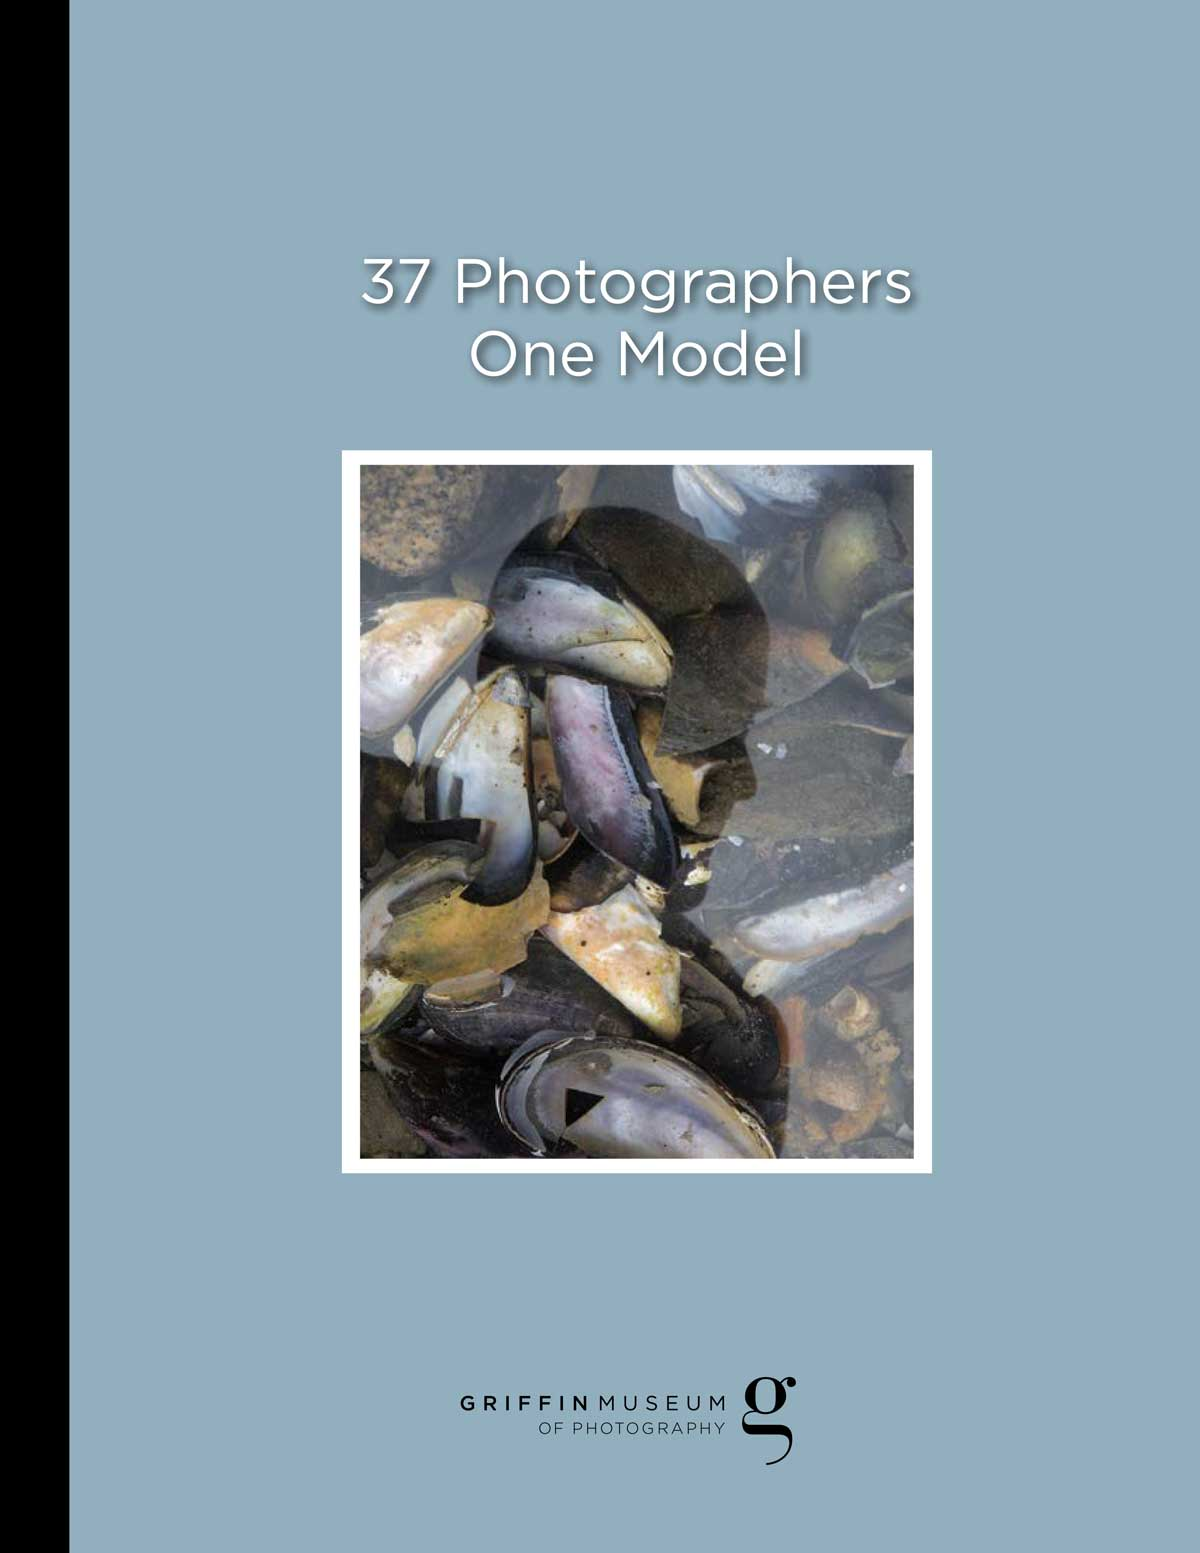 37 Photographers / One Model